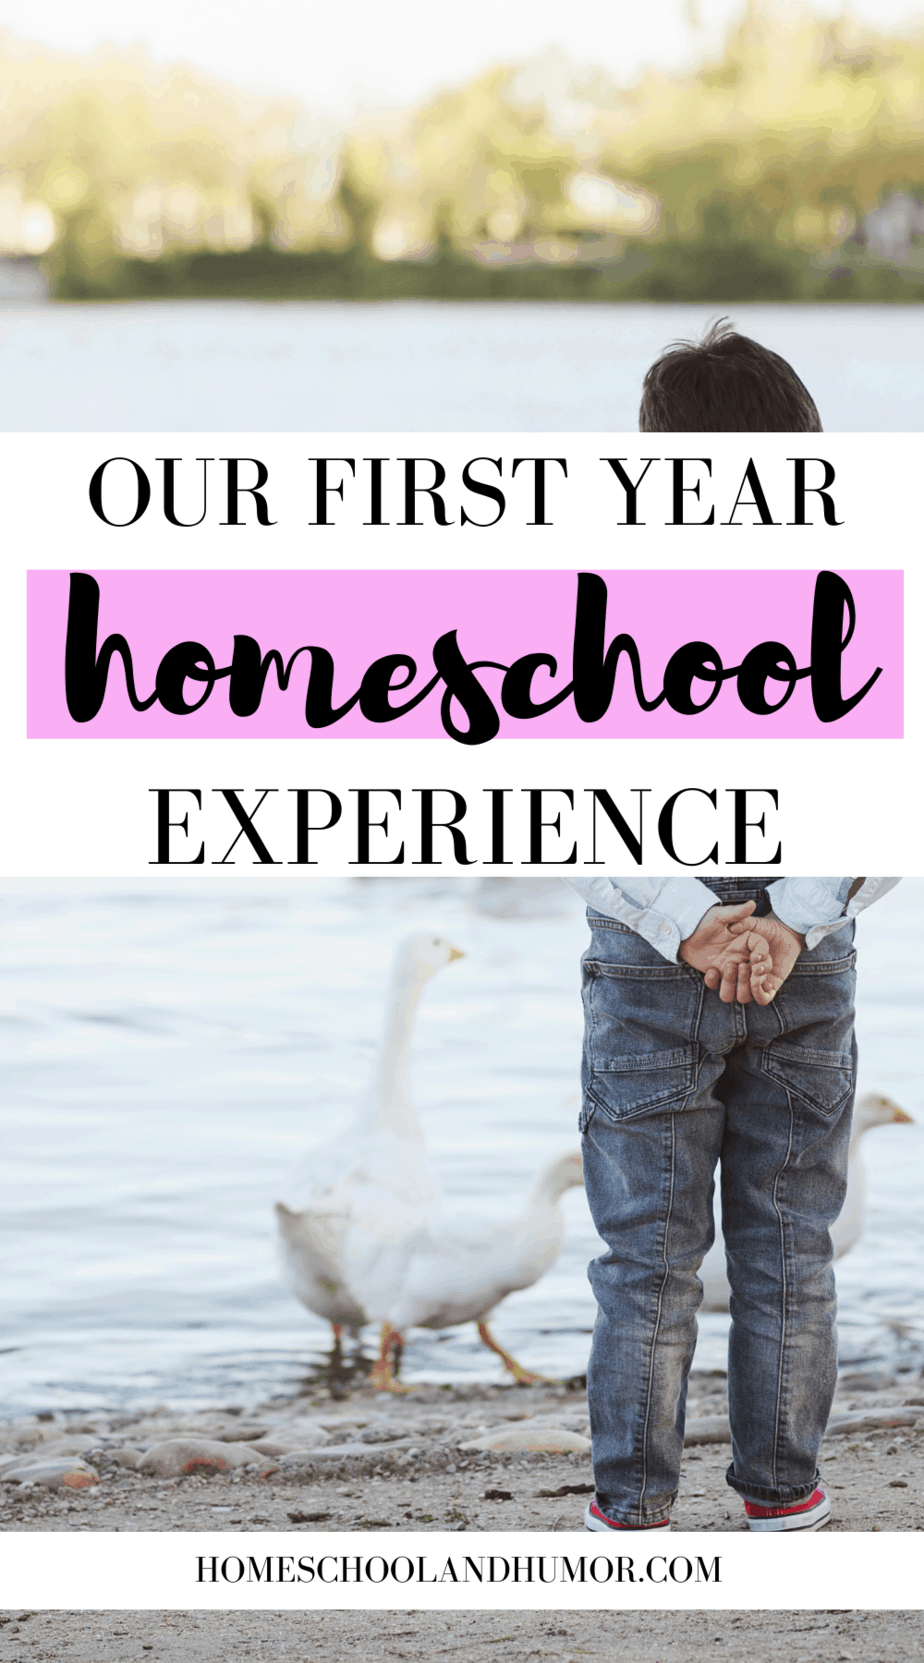 Our Homeschool Experience: Why Homeschooling Was The Best Choice For My Son